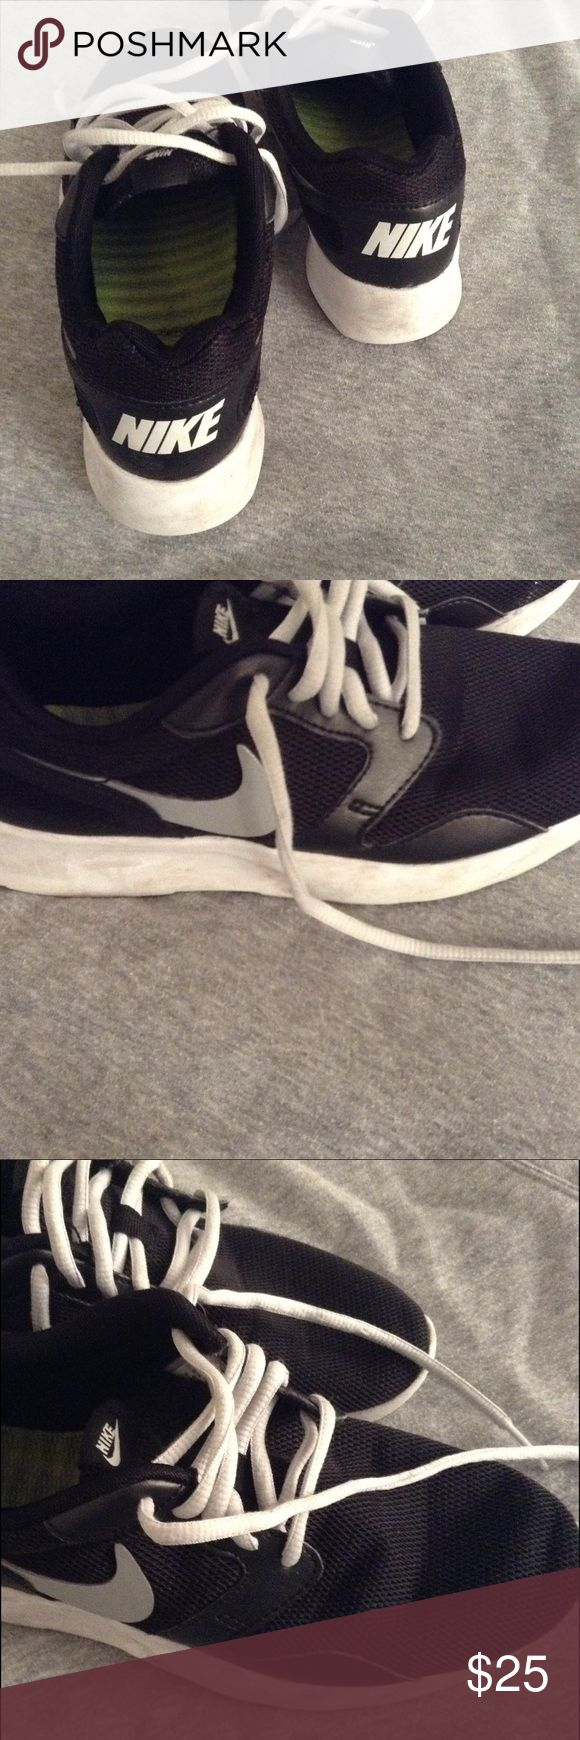 Nike shoes size 6 Nike shoes size 6 in a good condition Nike Shoes Athletic Shoes